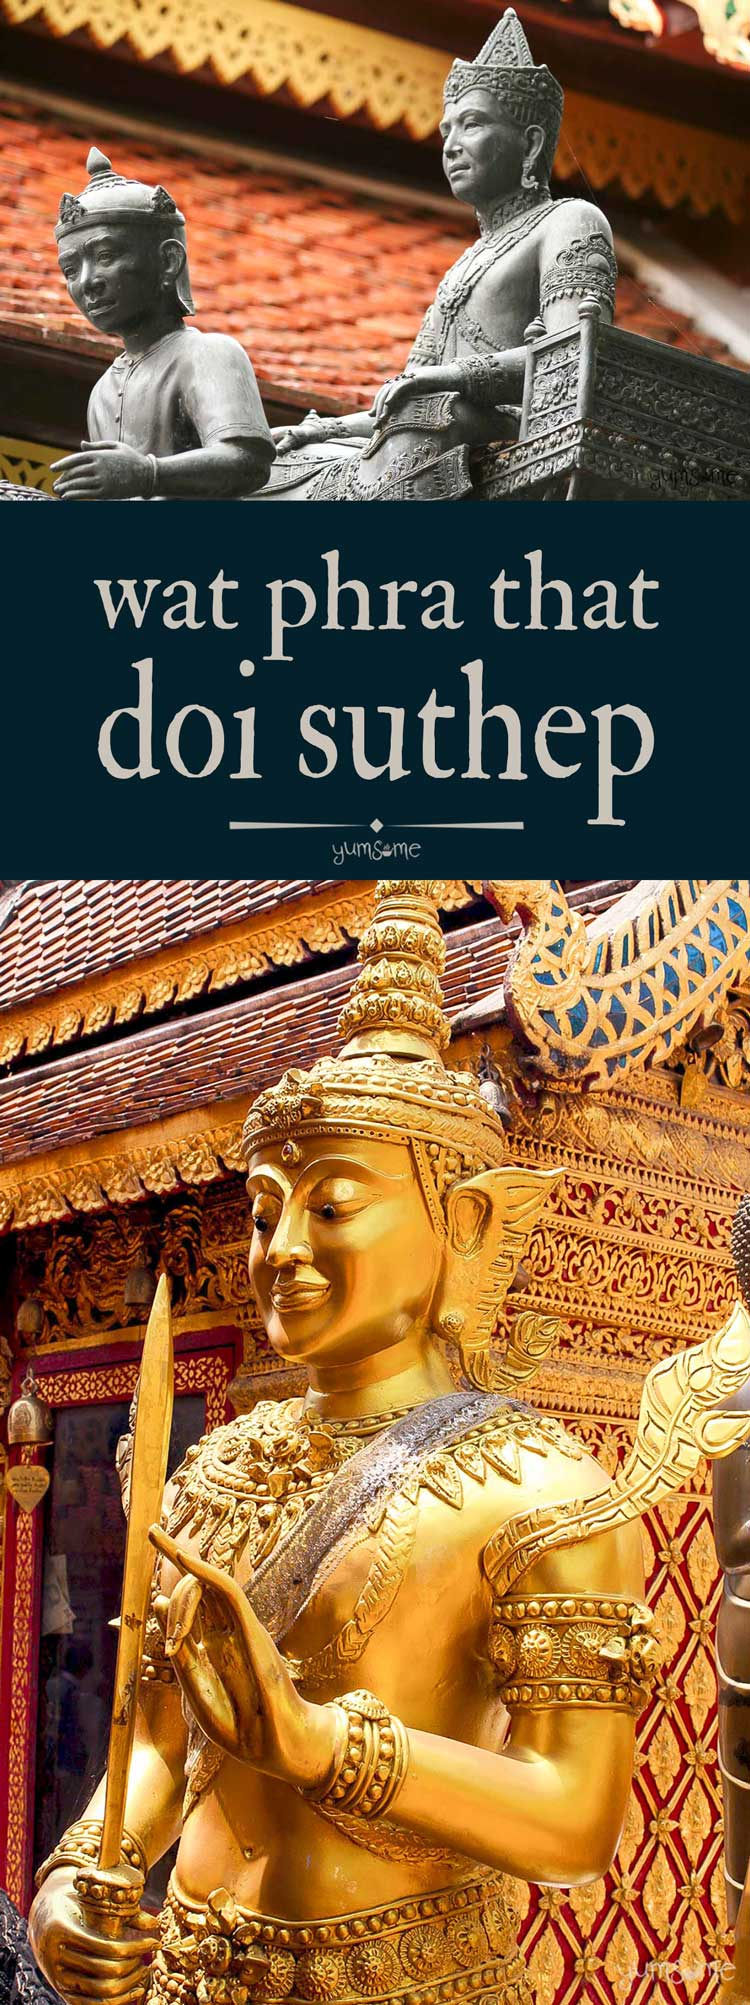 Founded in 1383 by the #Lanna king, Keu Naone, to house the relic of #Buddha\'s shoulder bone, the beautiful #temple, Wat Phra That #Doi #Suthep is home to one of Northern #Thailand\'s most sacred shrines. | yumsome.com